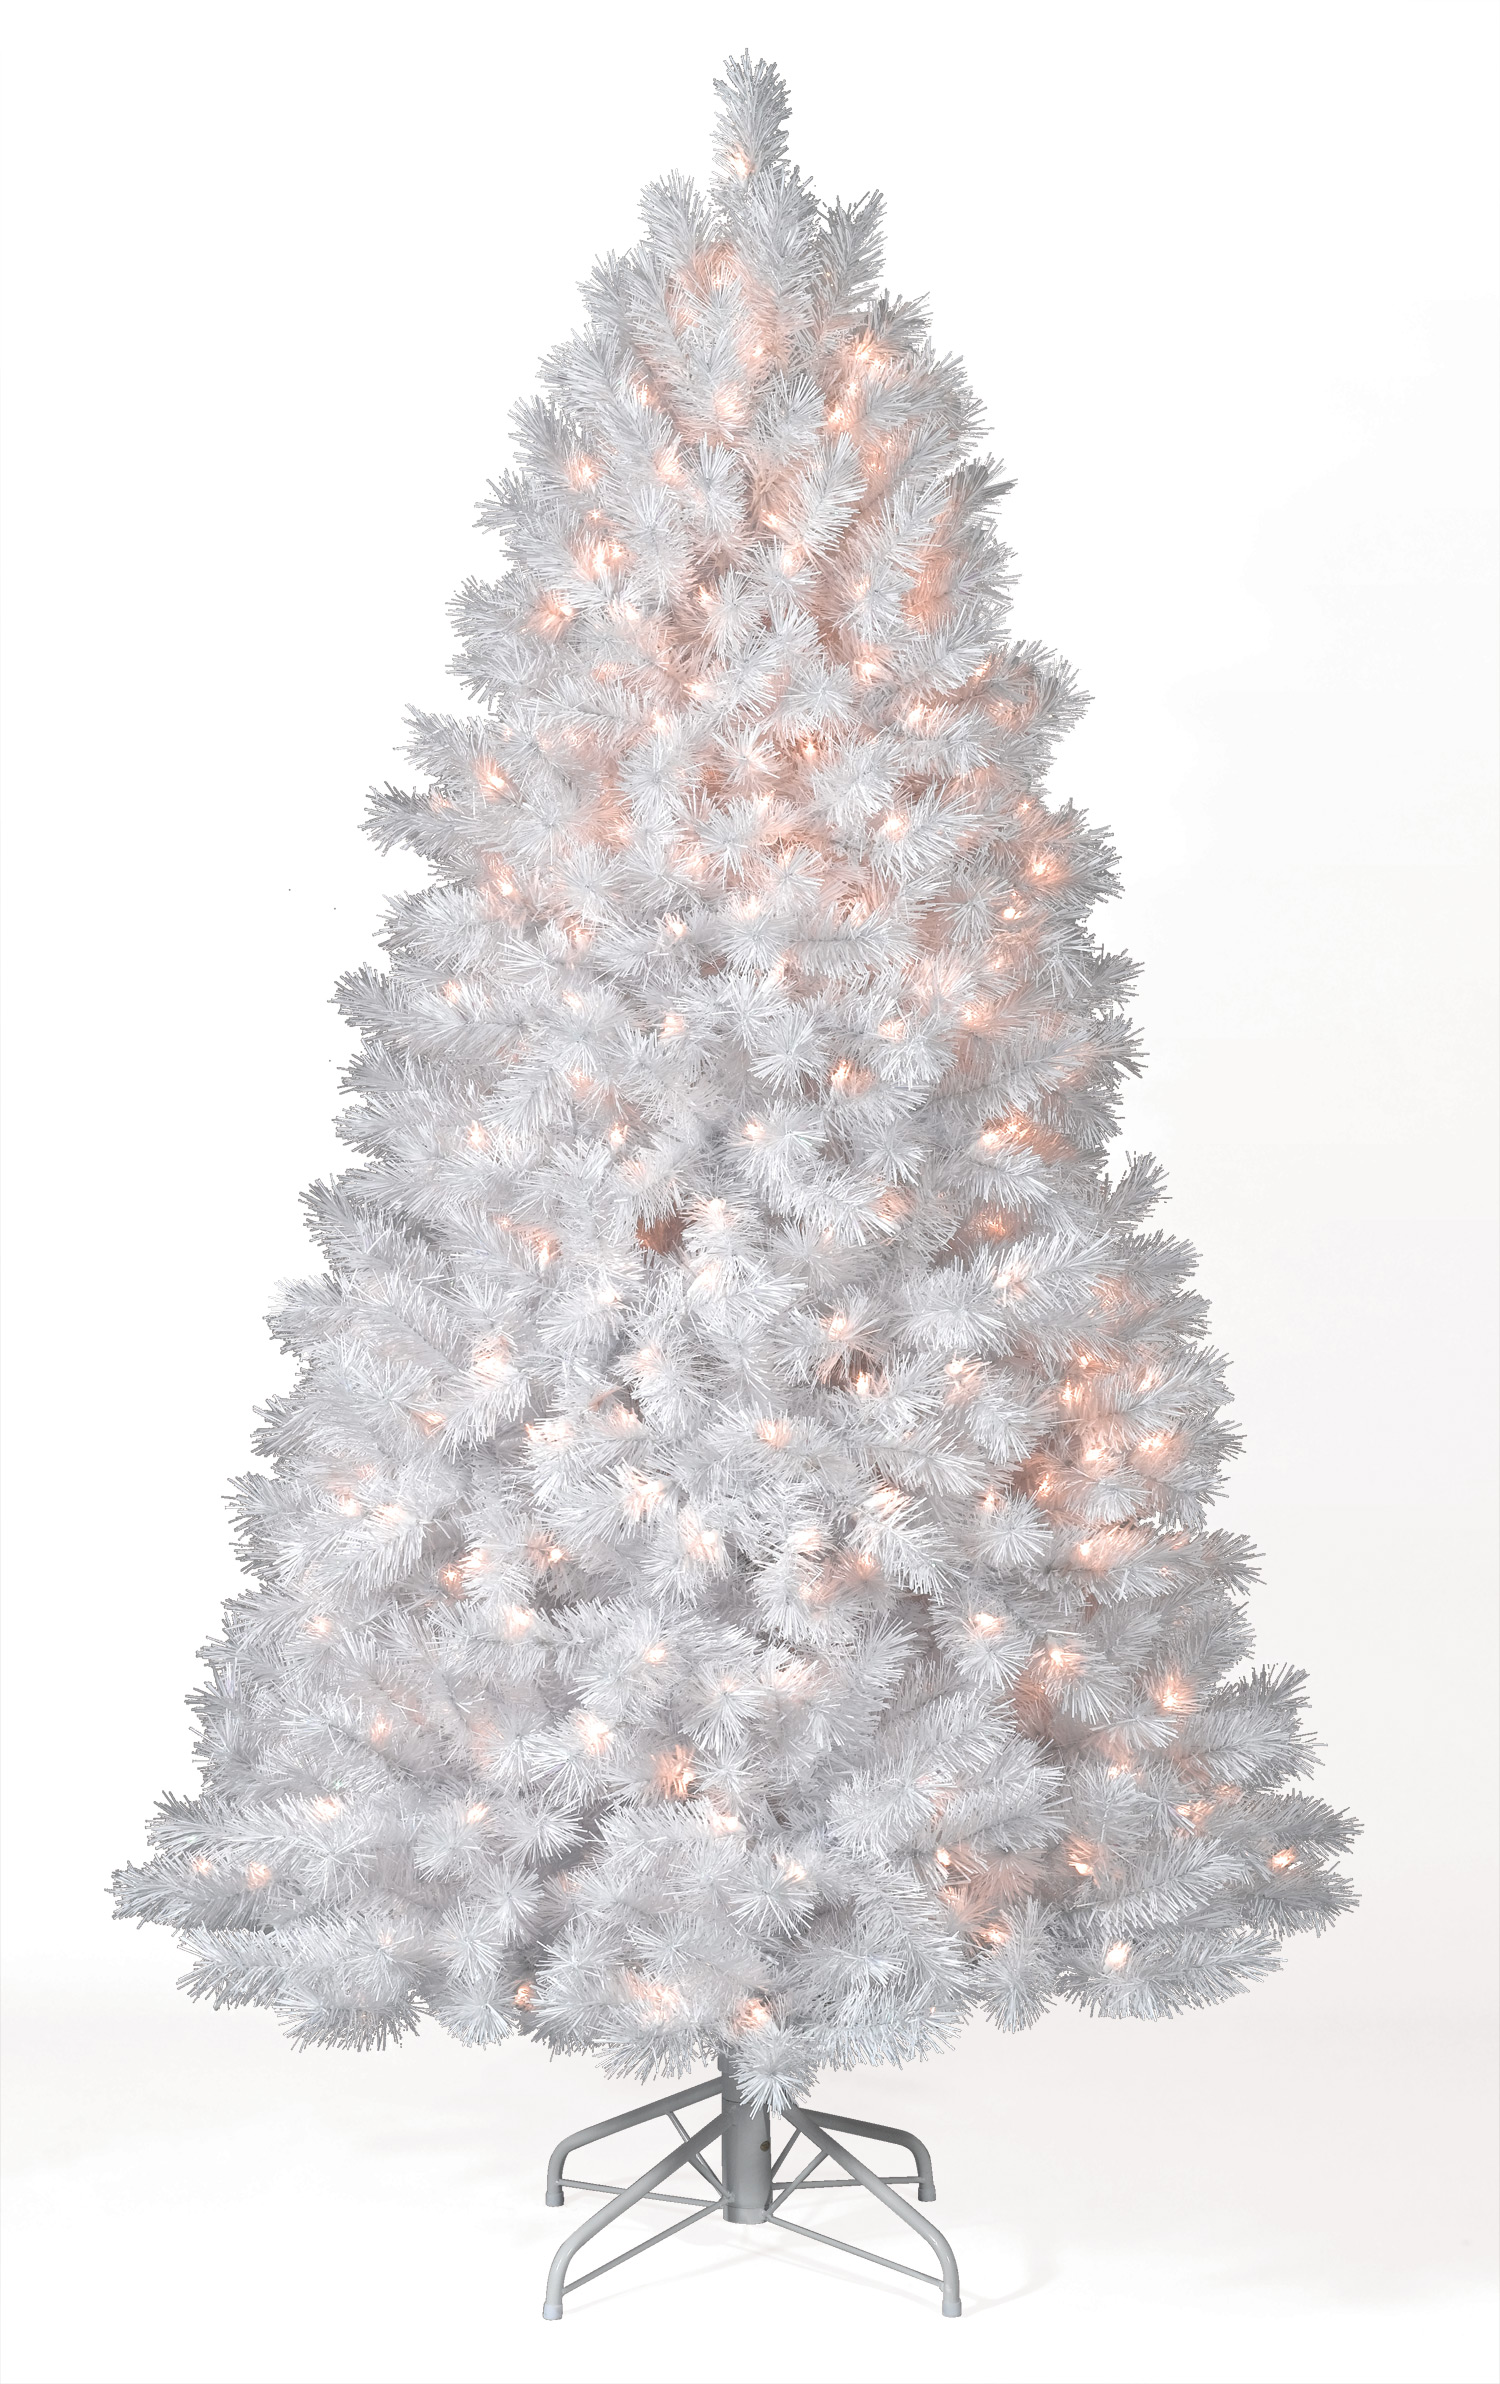 4 foot shimmering white clear christmas tree - 4 Foot White Christmas Tree